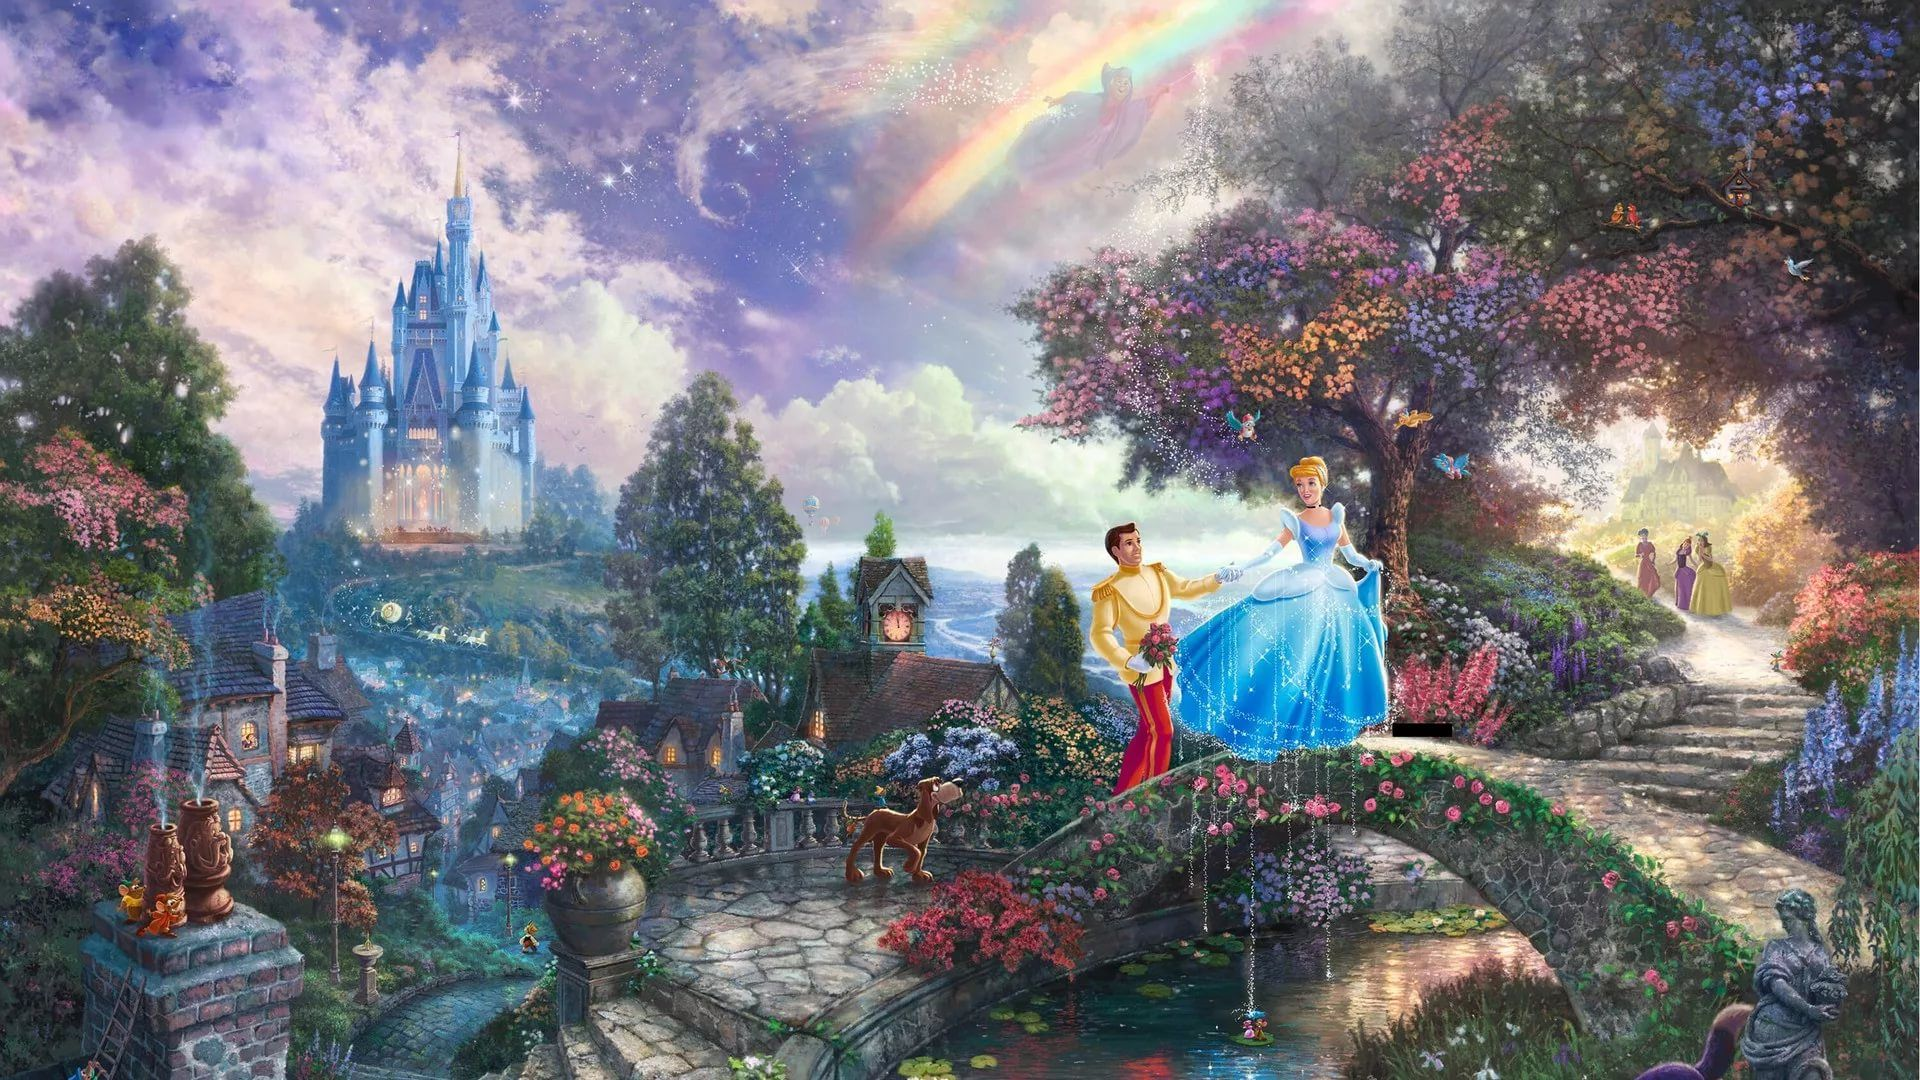 Cinderella wallpaper photo full hd